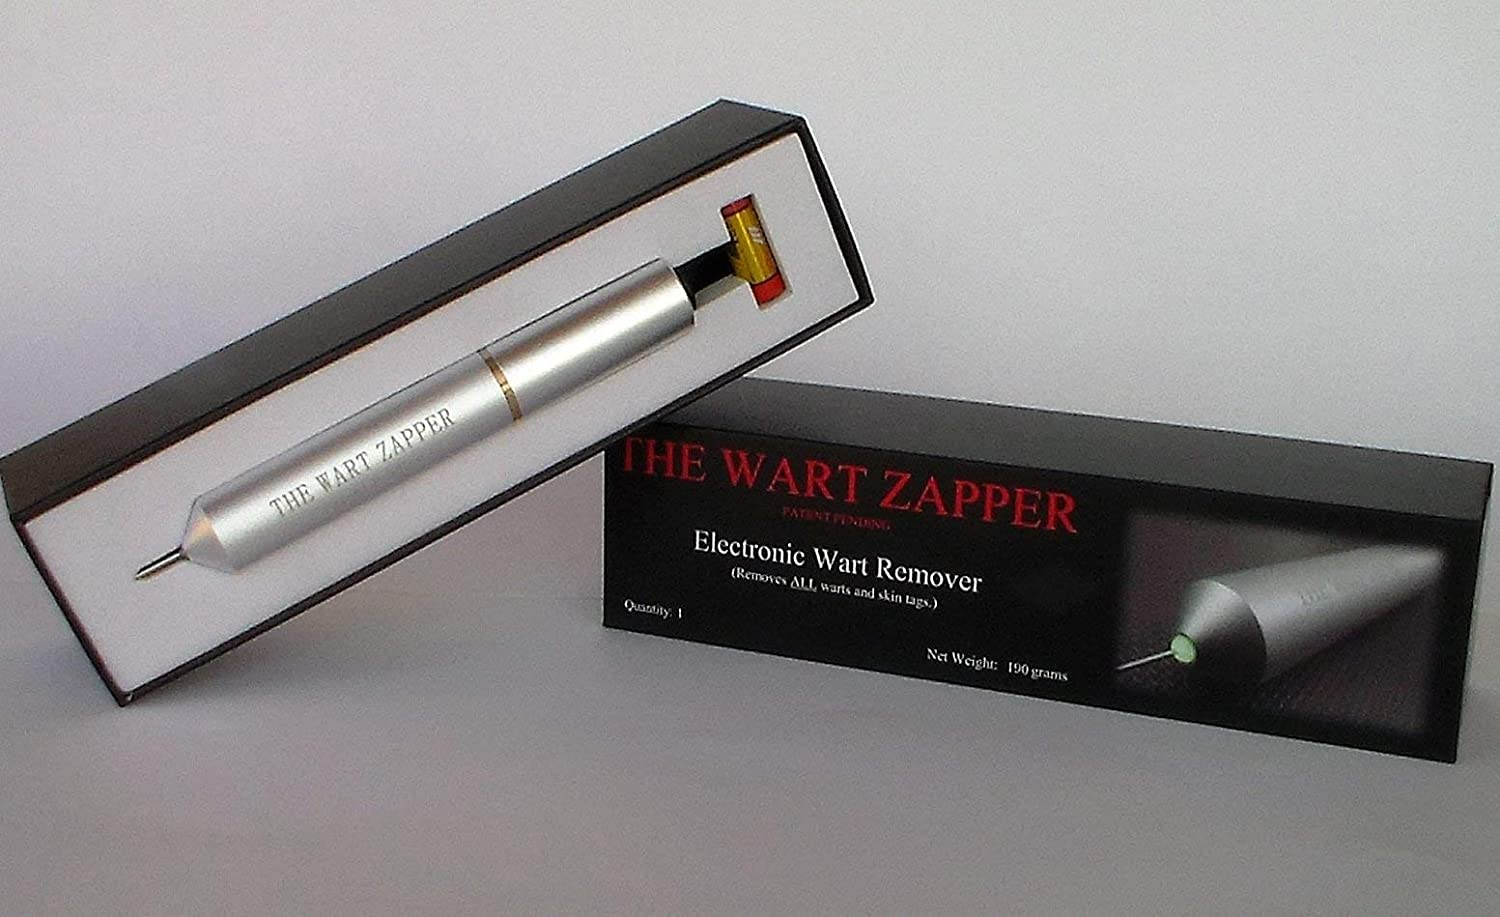 The Wart Zapper - Electronic Wart and Skin Tag Remover